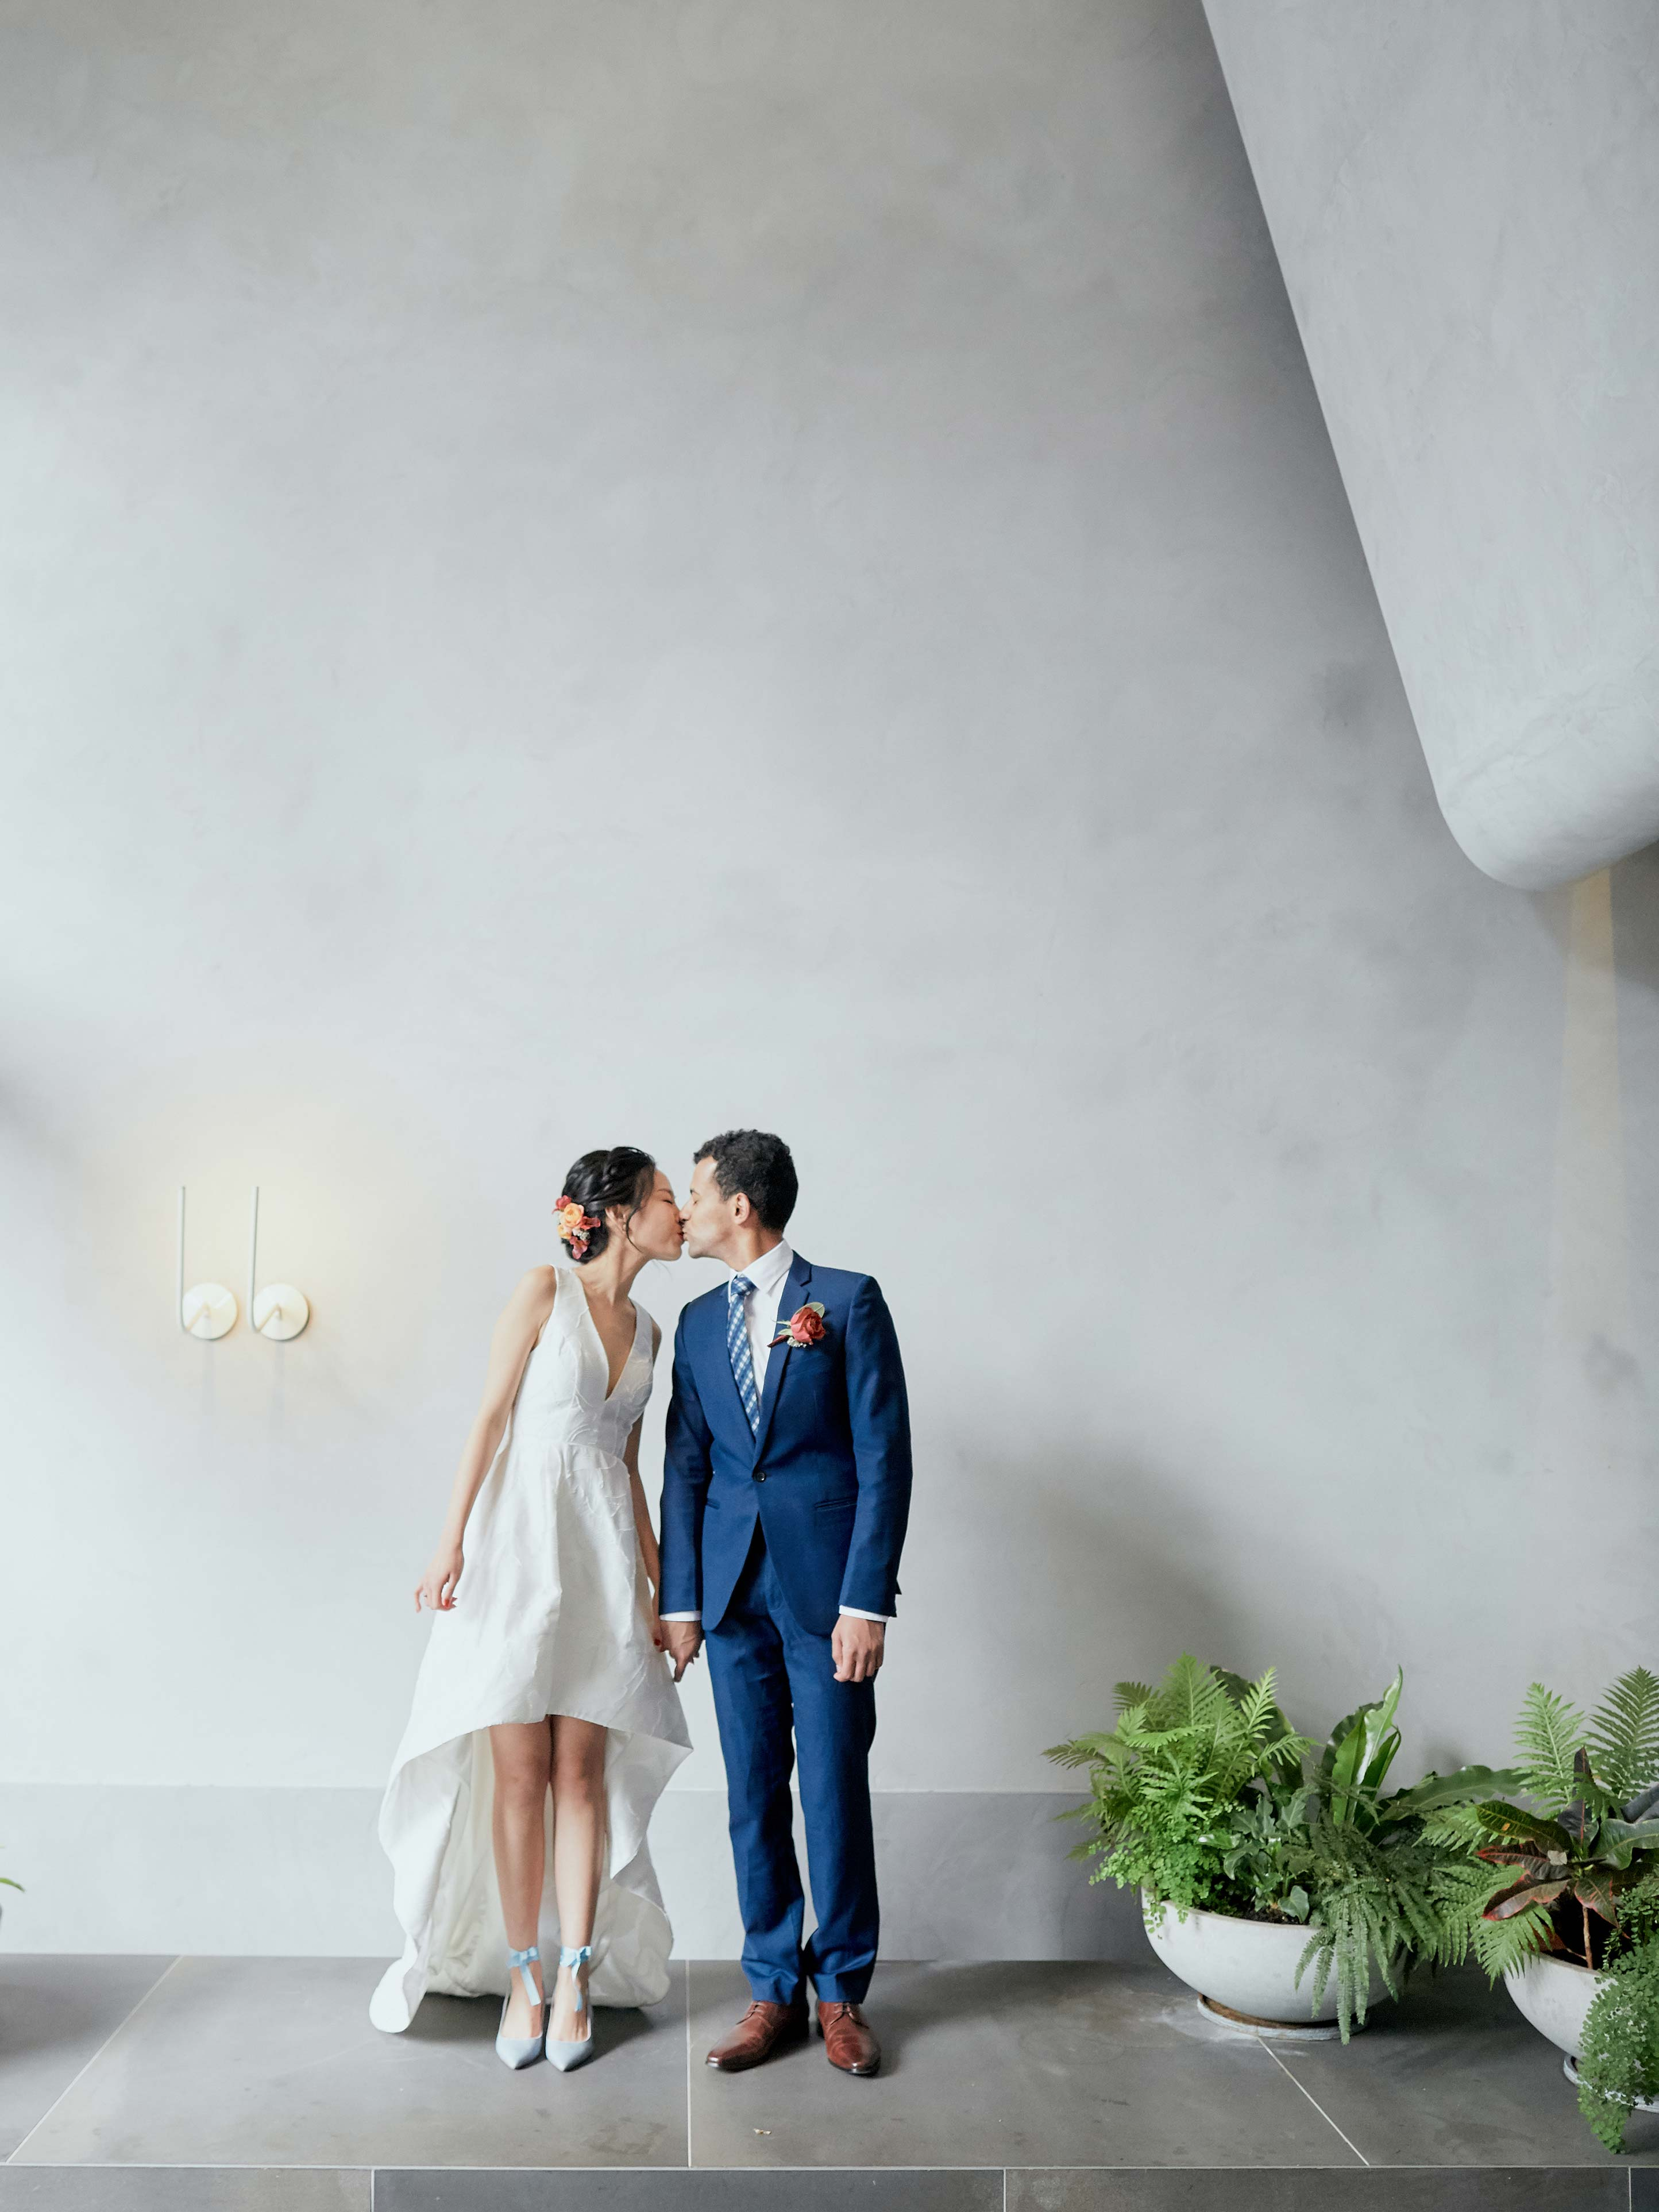 Melbourne-Wedding-Photographer-Kettle-Black-kiss